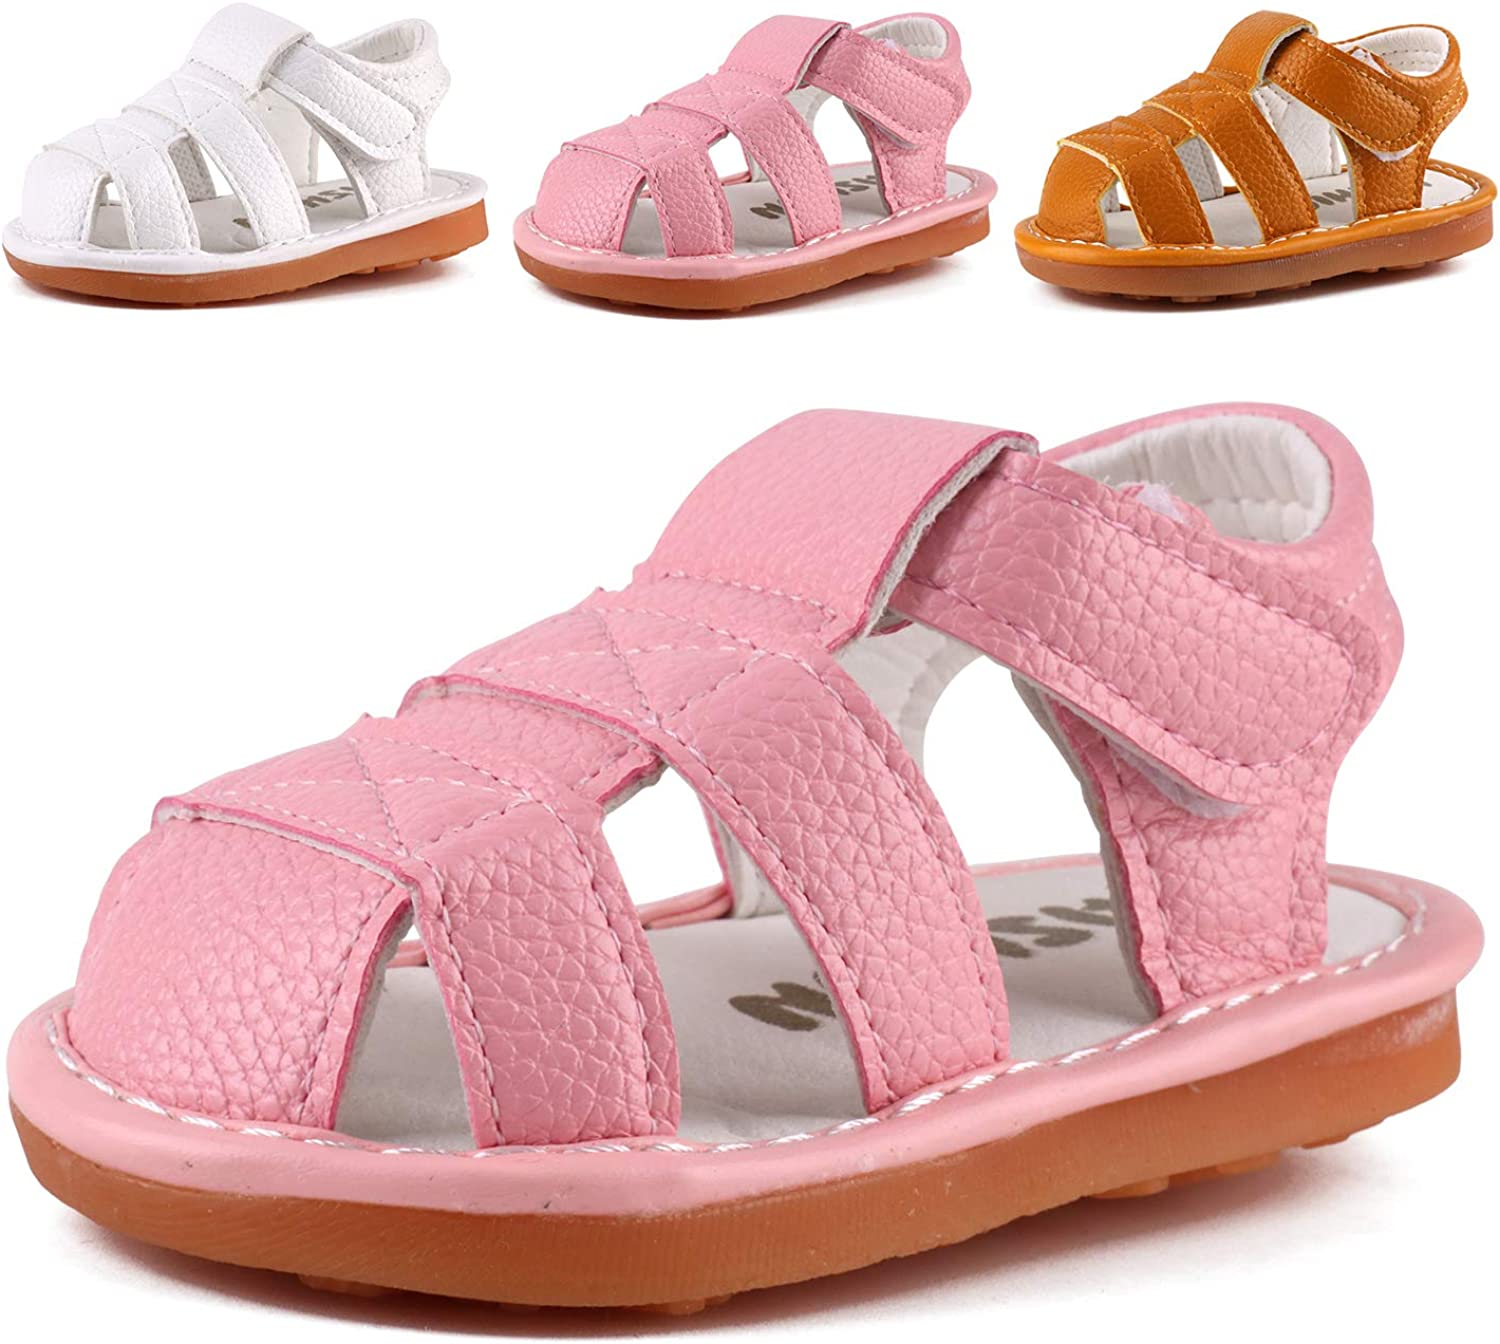 Toddler Boys & Girls Squeaky Sandals Closed-Toe Anti-Slip Rubber Sole First Walkers Shoes